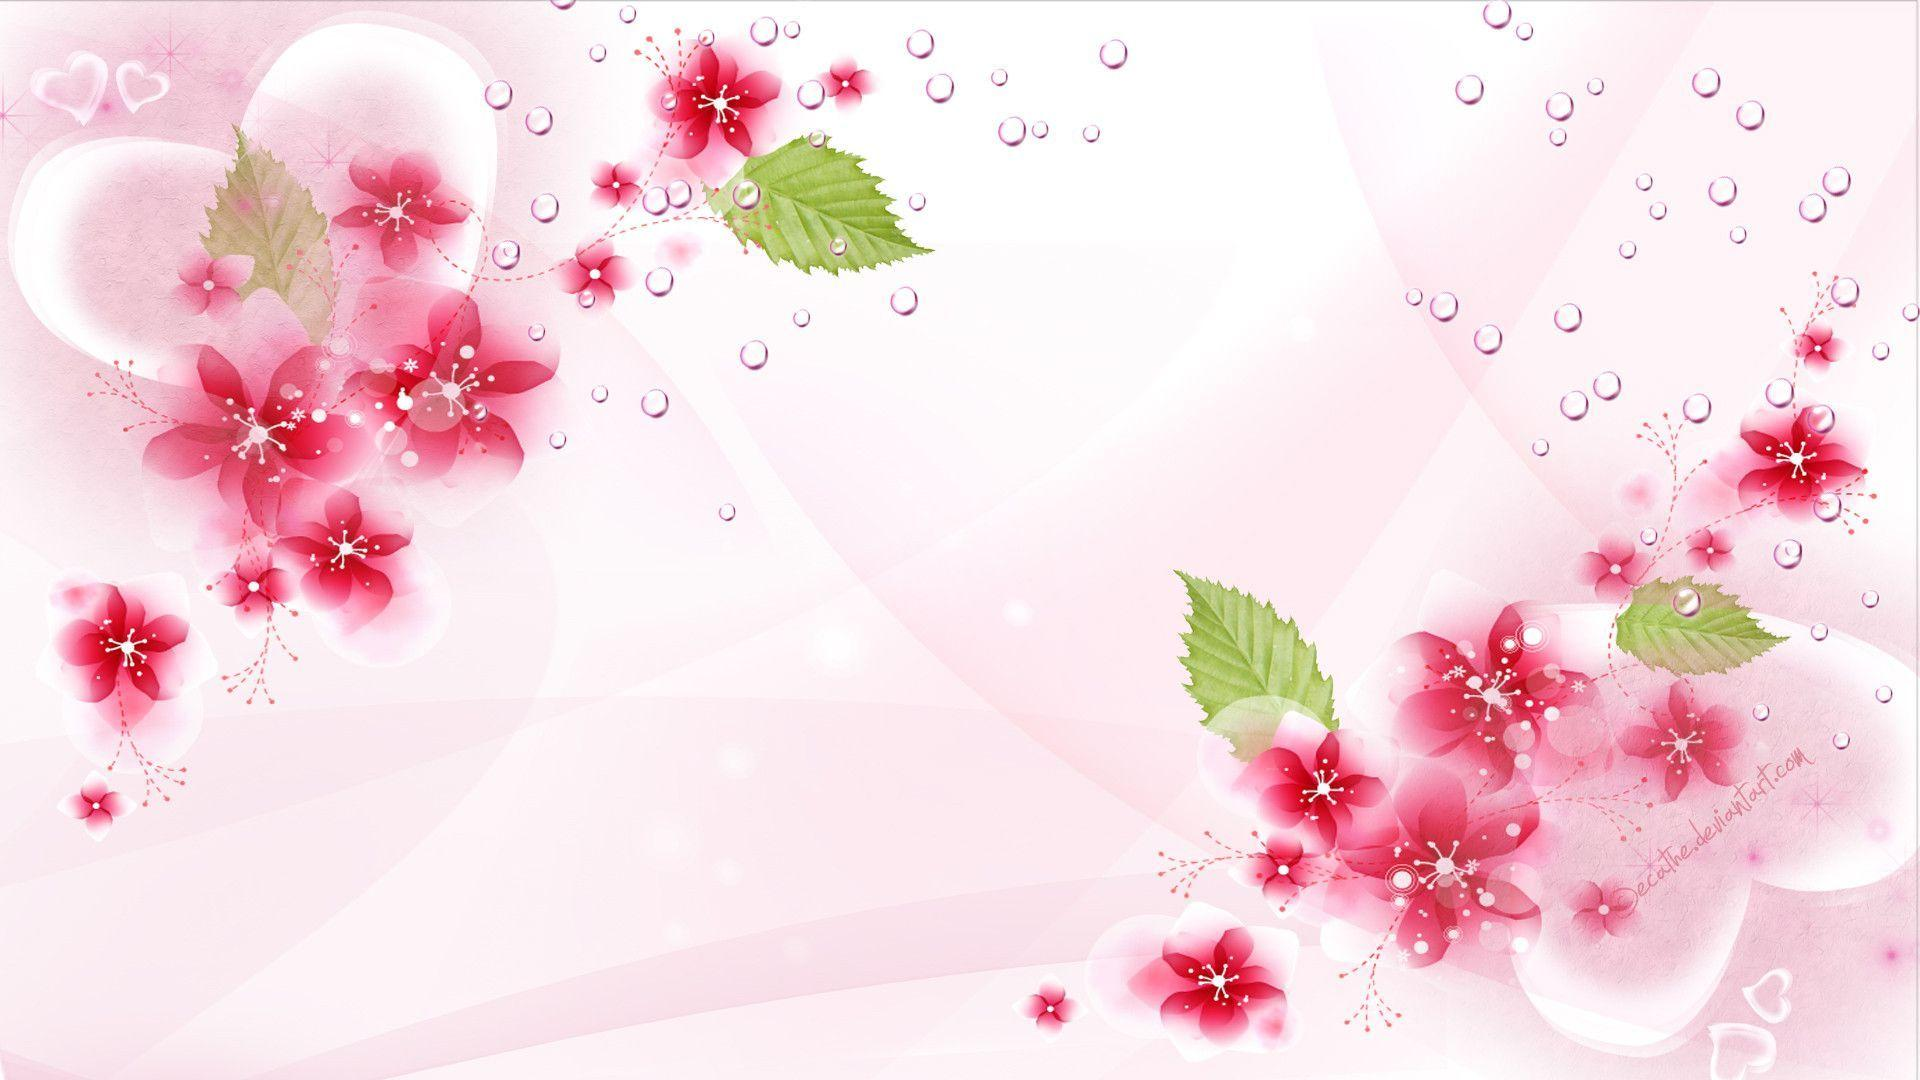 Rose Flowers Backgrounds